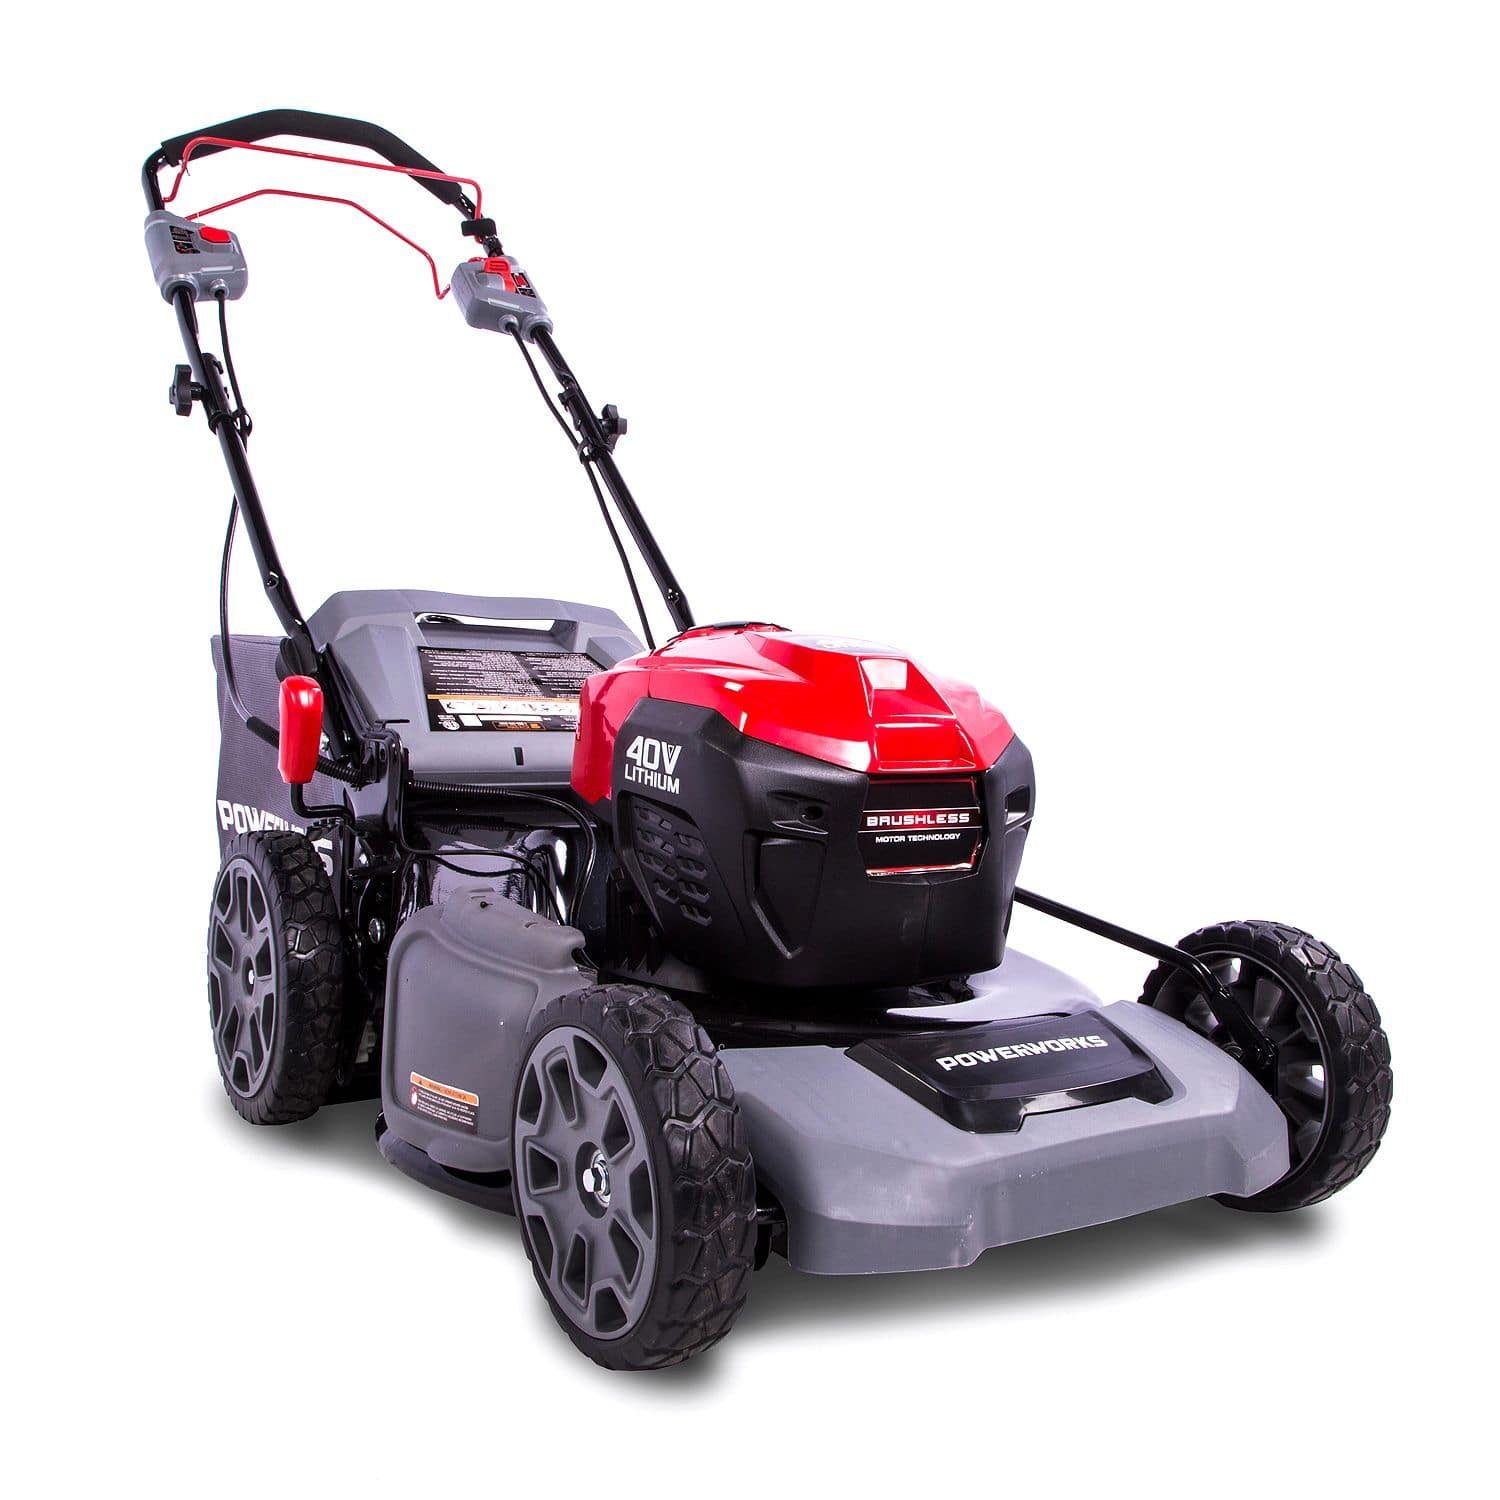 Lawn Mower : Powerworks 21 Inch 40V Lithium Self-Propelled Mower, 5 Ah Battery and Charger Included $348.98